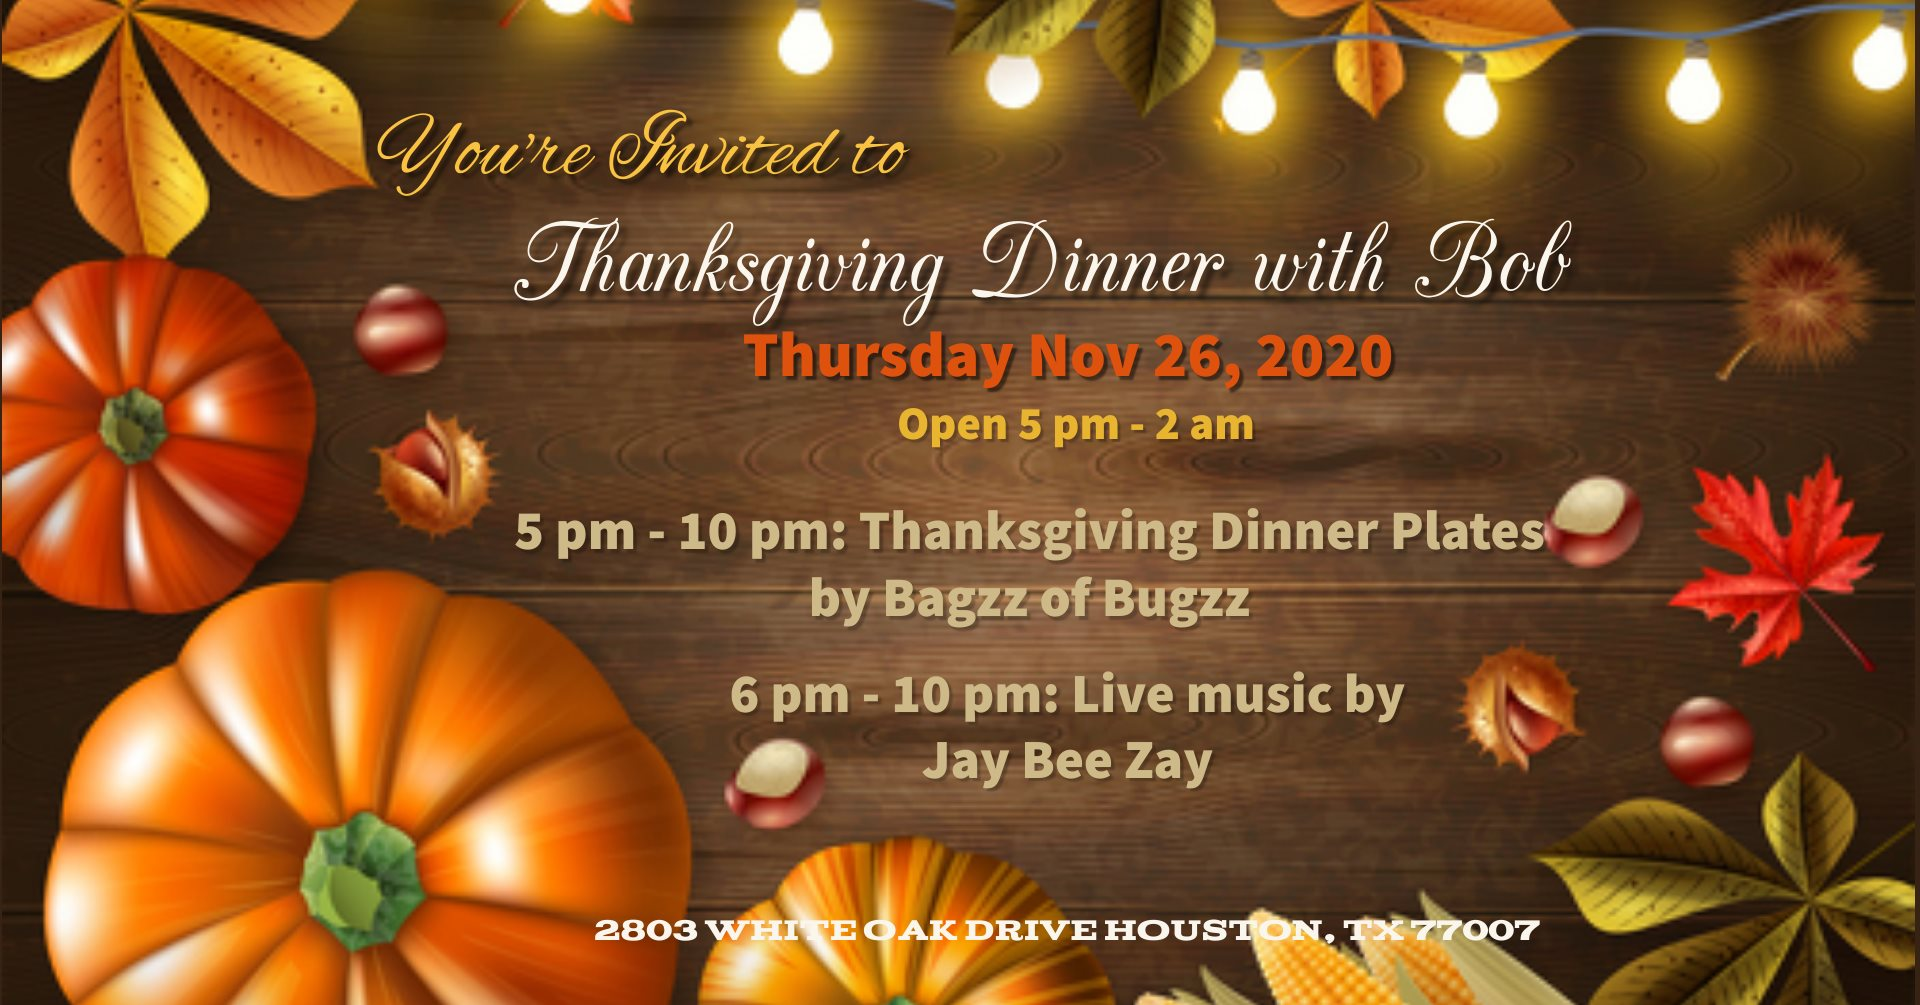 Thanksgiving Dinner Party at Bobcat Teddy's Ice House